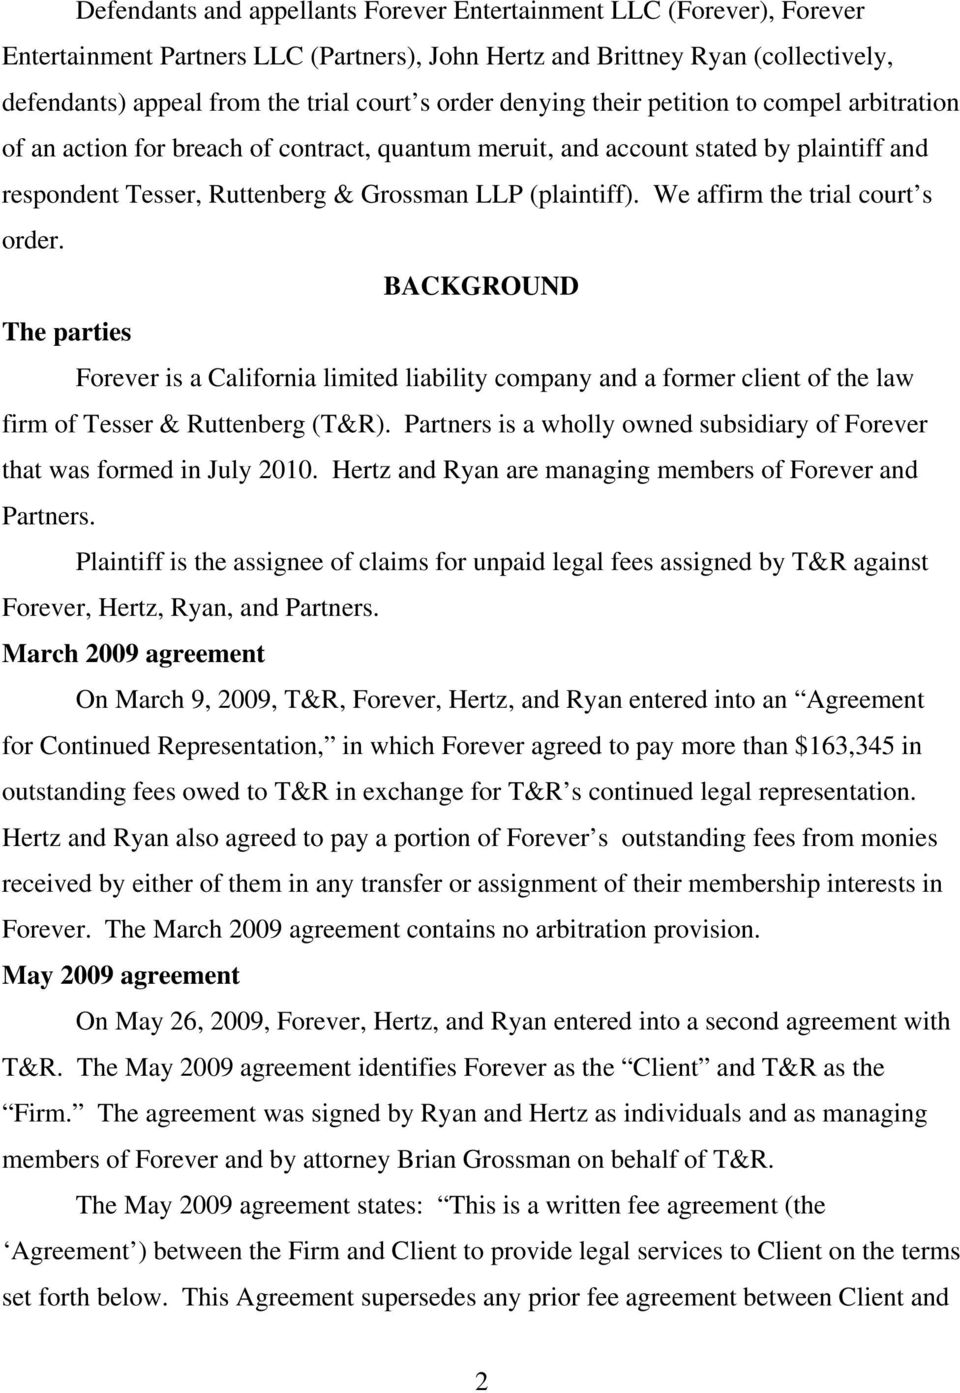 We affirm the trial court s order. BACKGROUND The parties Forever is a California limited liability company and a former client of the law firm of Tesser & Ruttenberg (T&R).